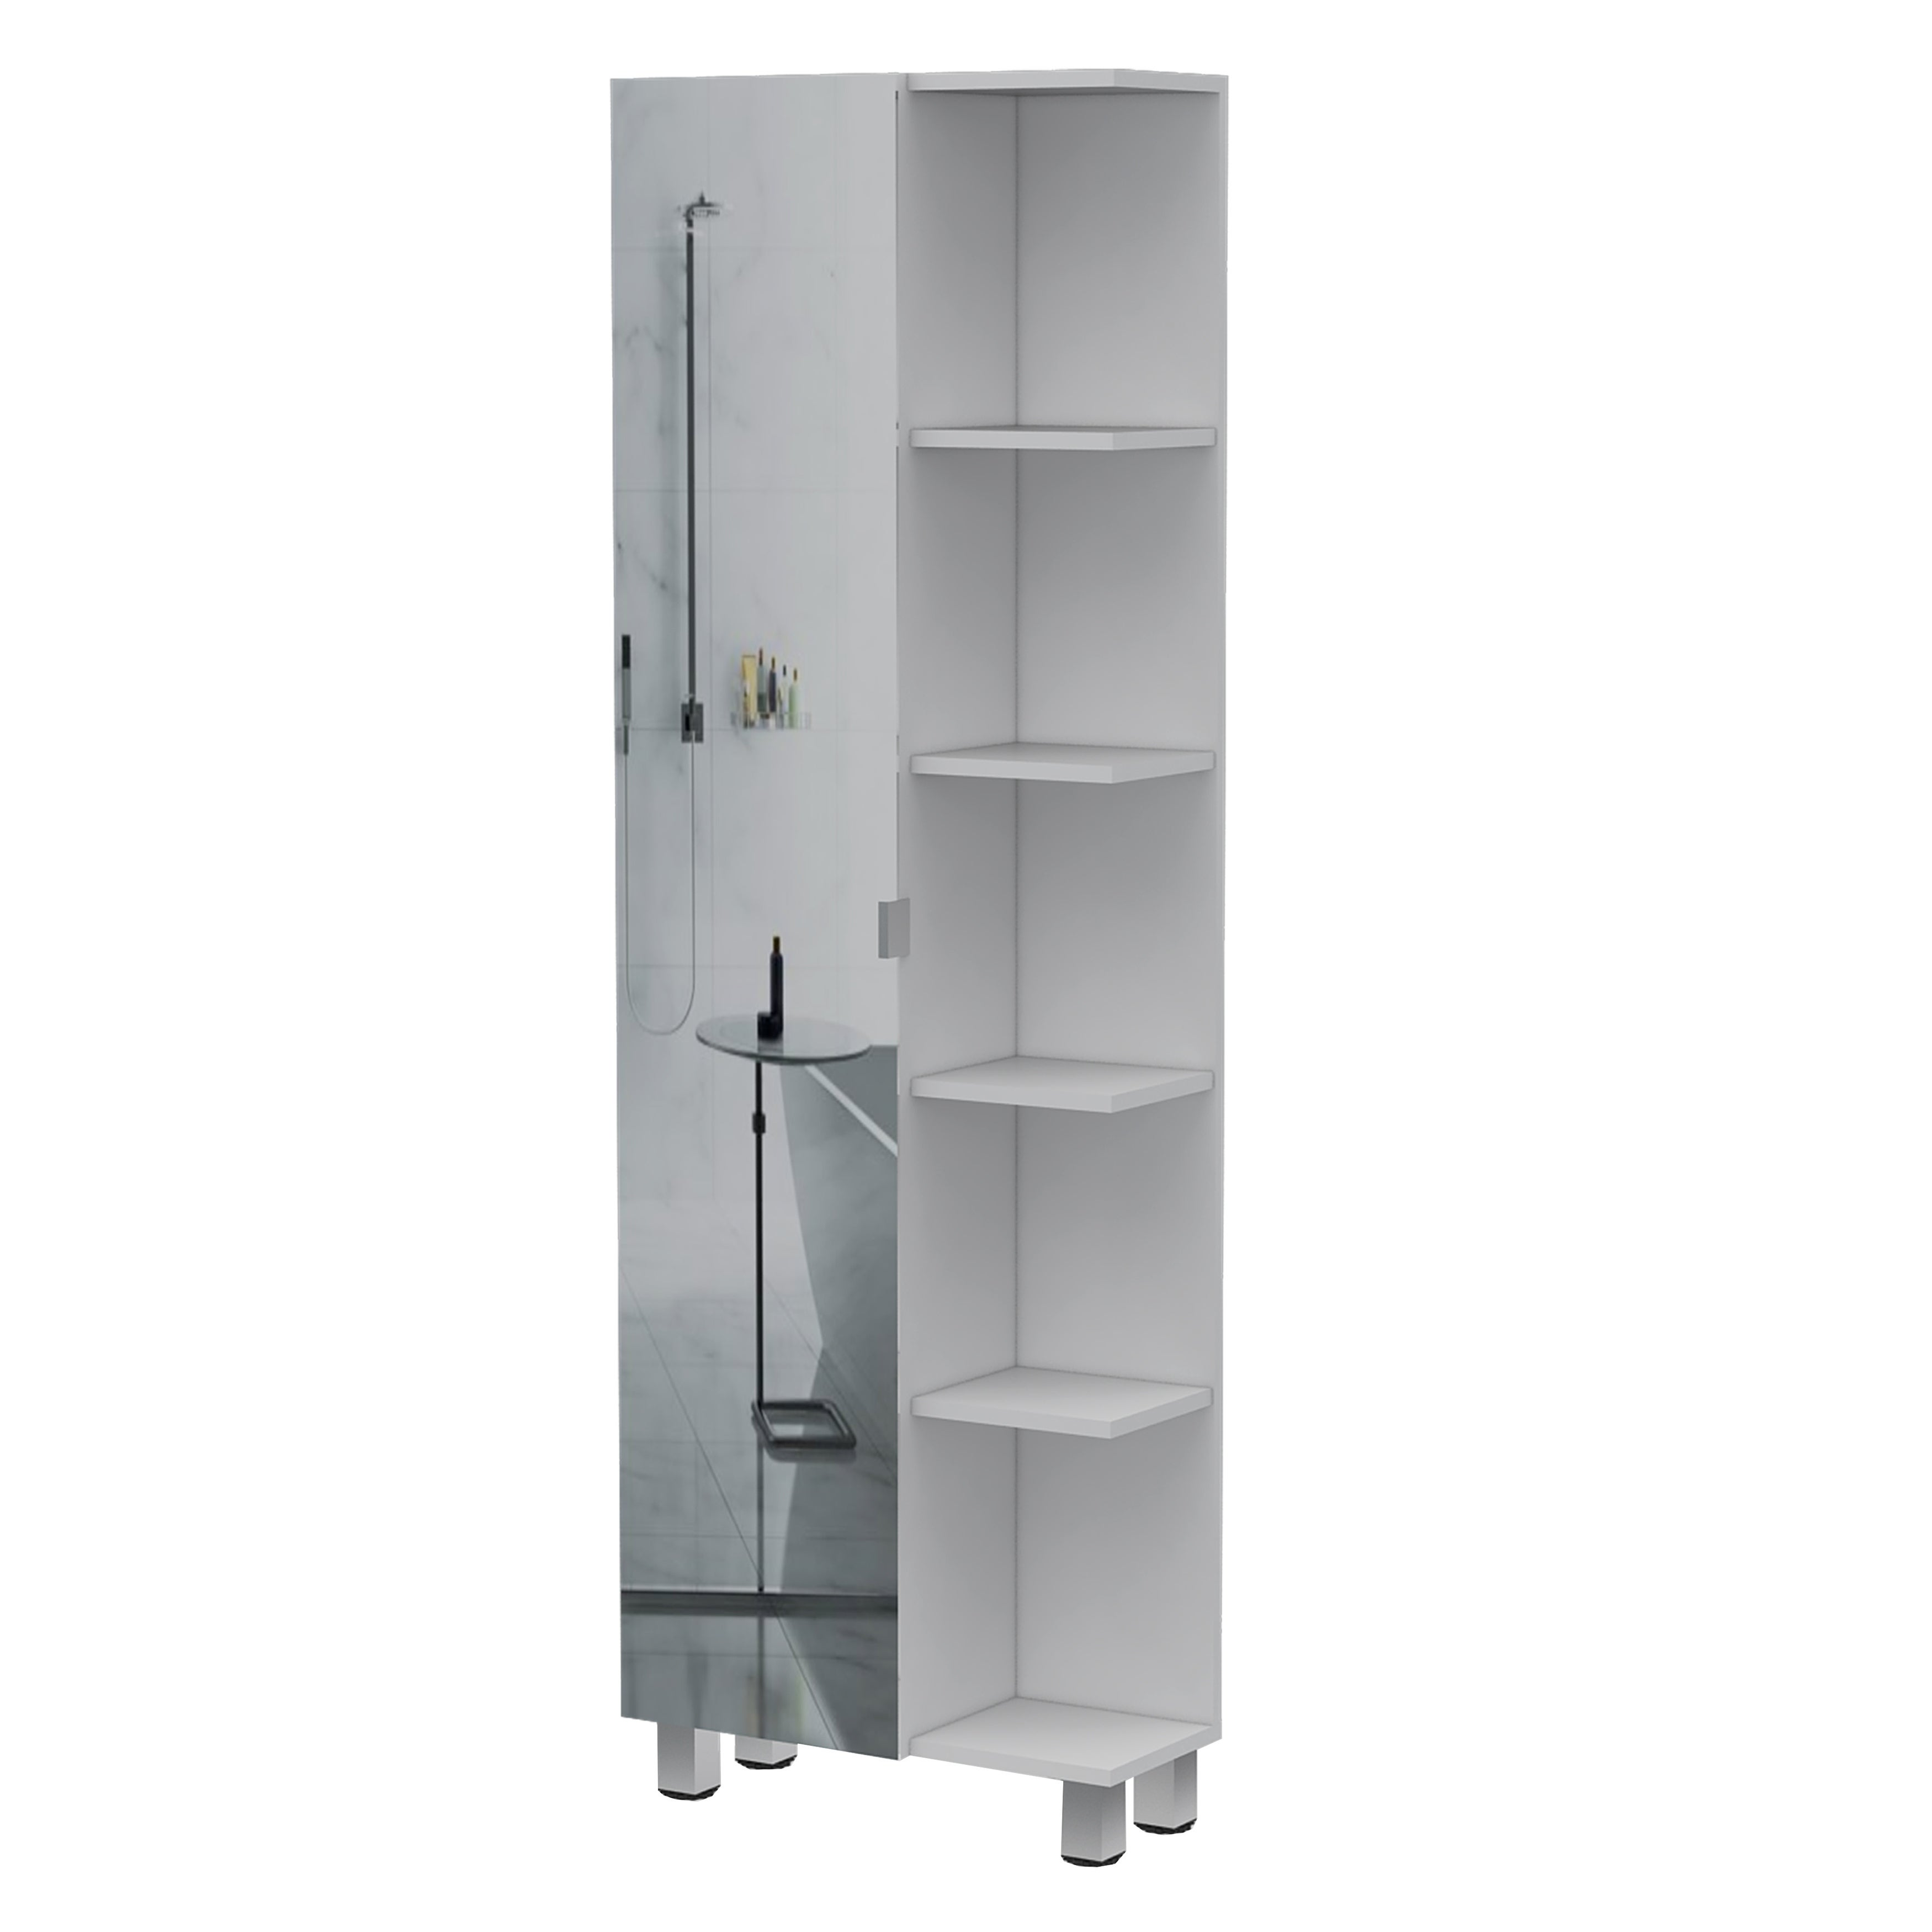 Tuhome Urano Bathroom Cabinet Linen Cabinet N A